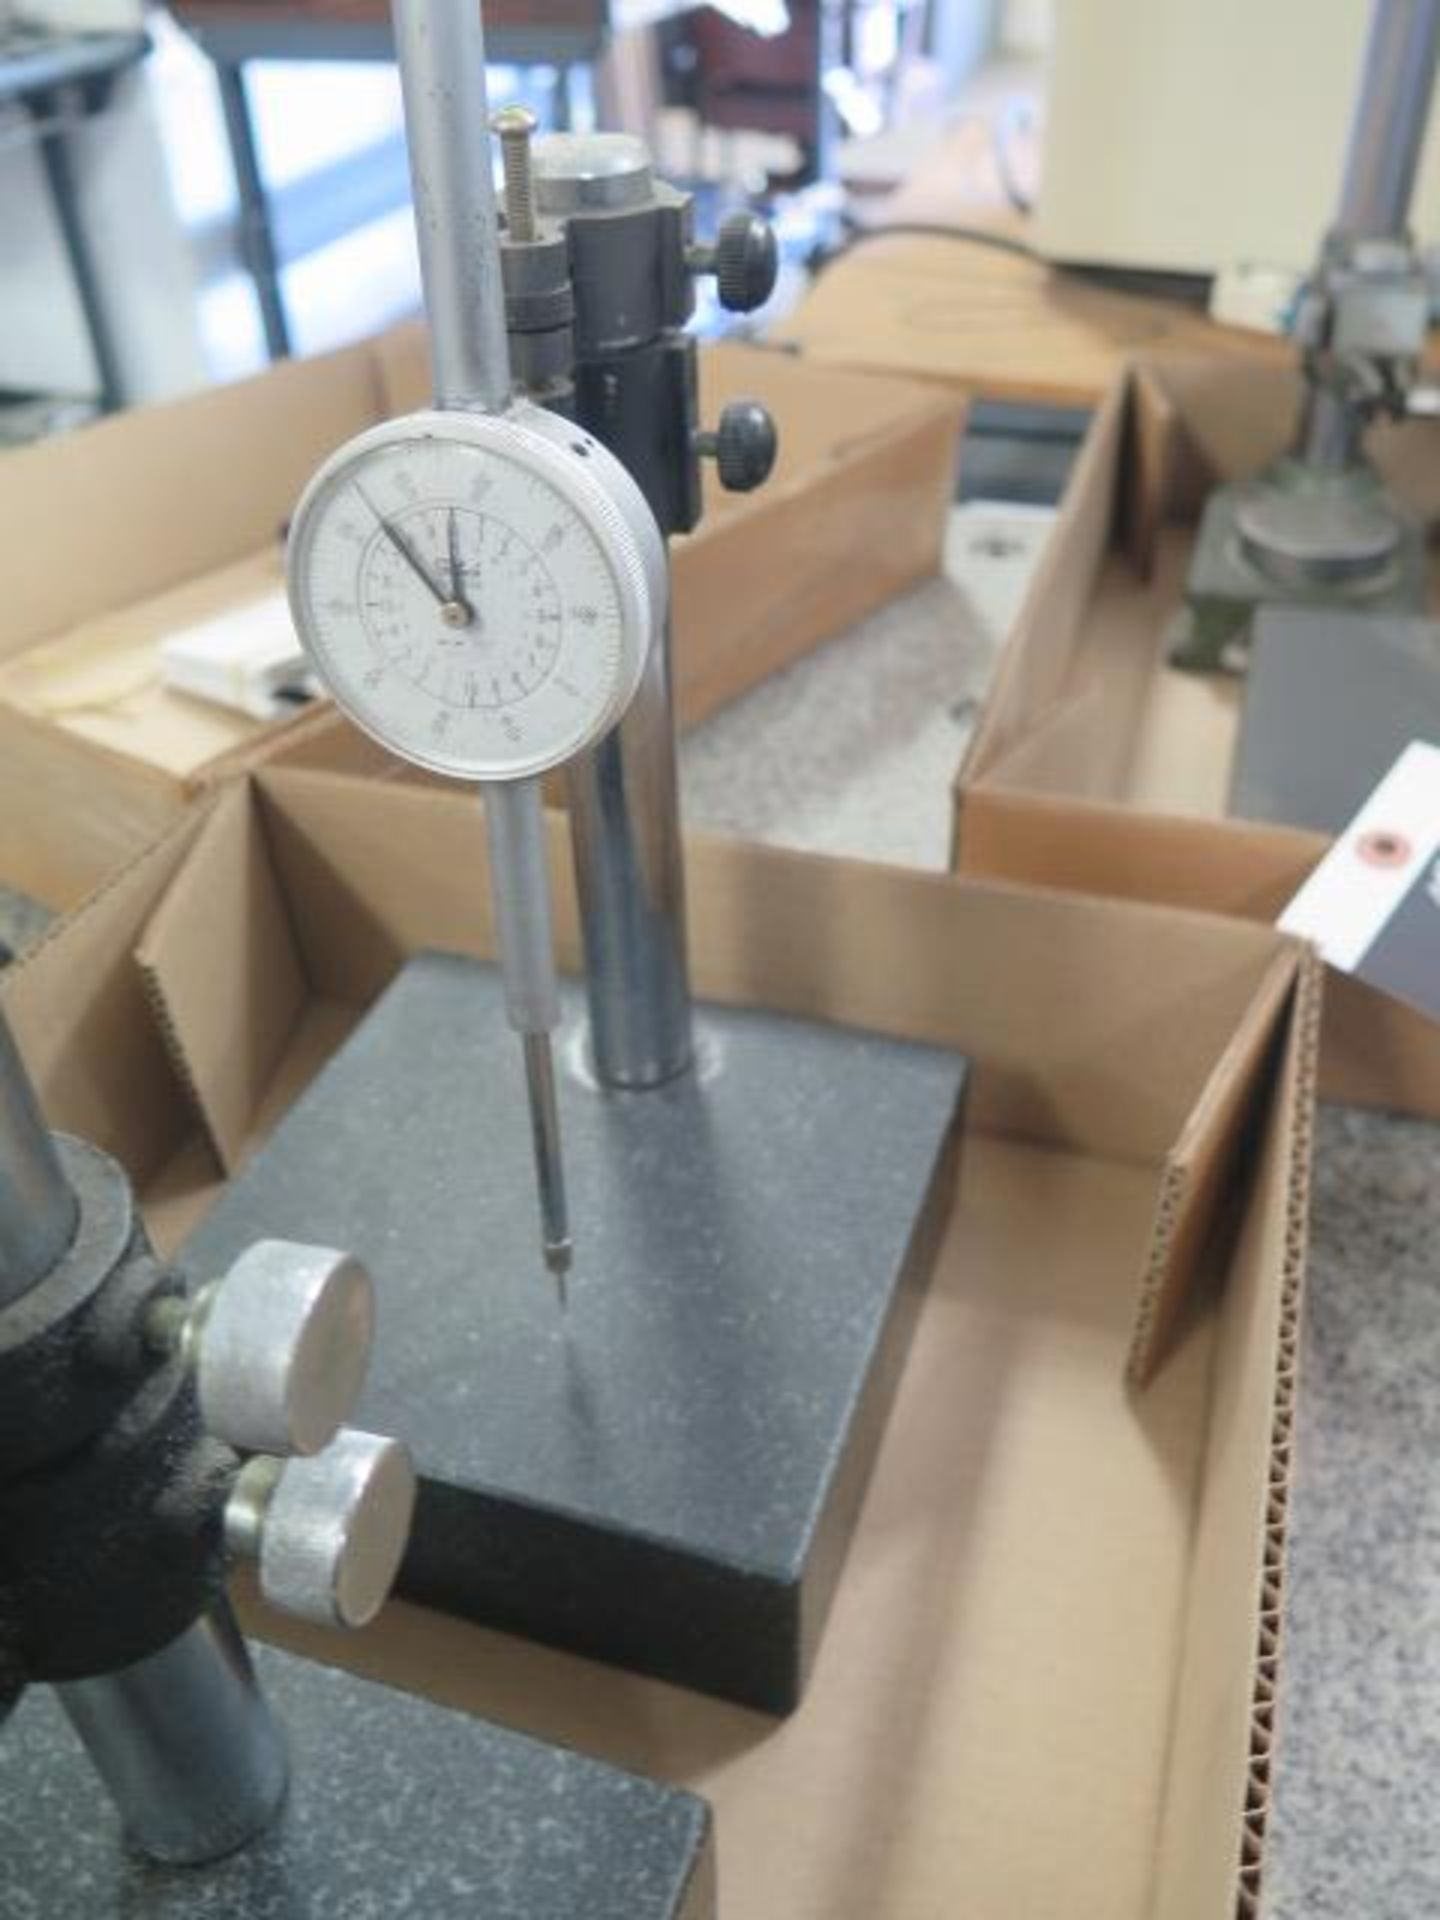 """6"""" x 6"""" Granite Indicator Stands (2) w/ Dial Indicators (SOLD AS-IS - NO WARRANTY) - Image 4 of 4"""